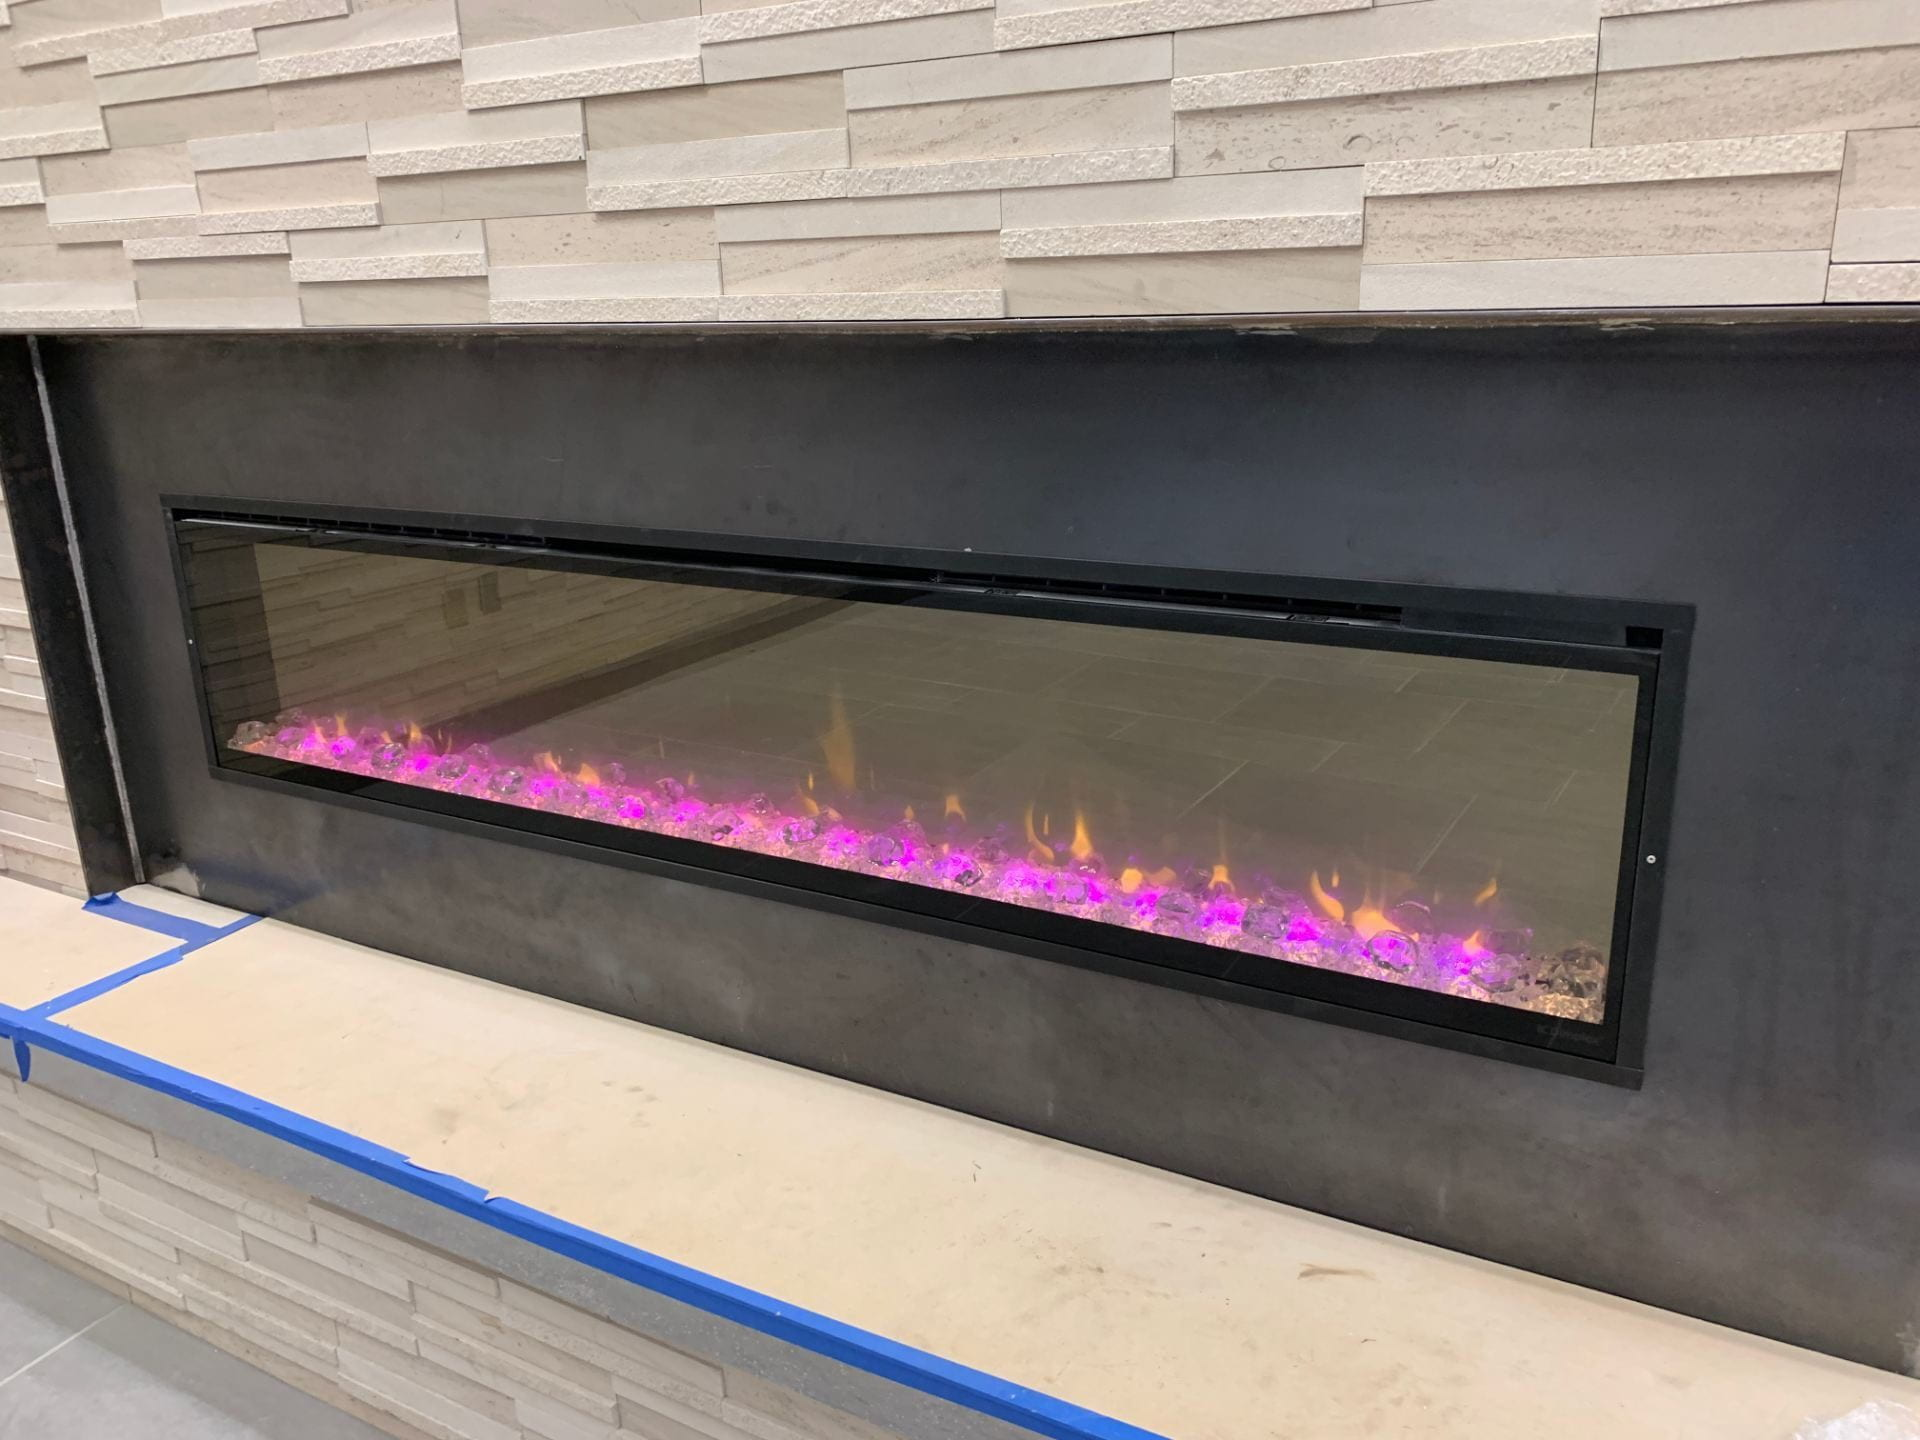 A picture of the fireplace inside the cafe.